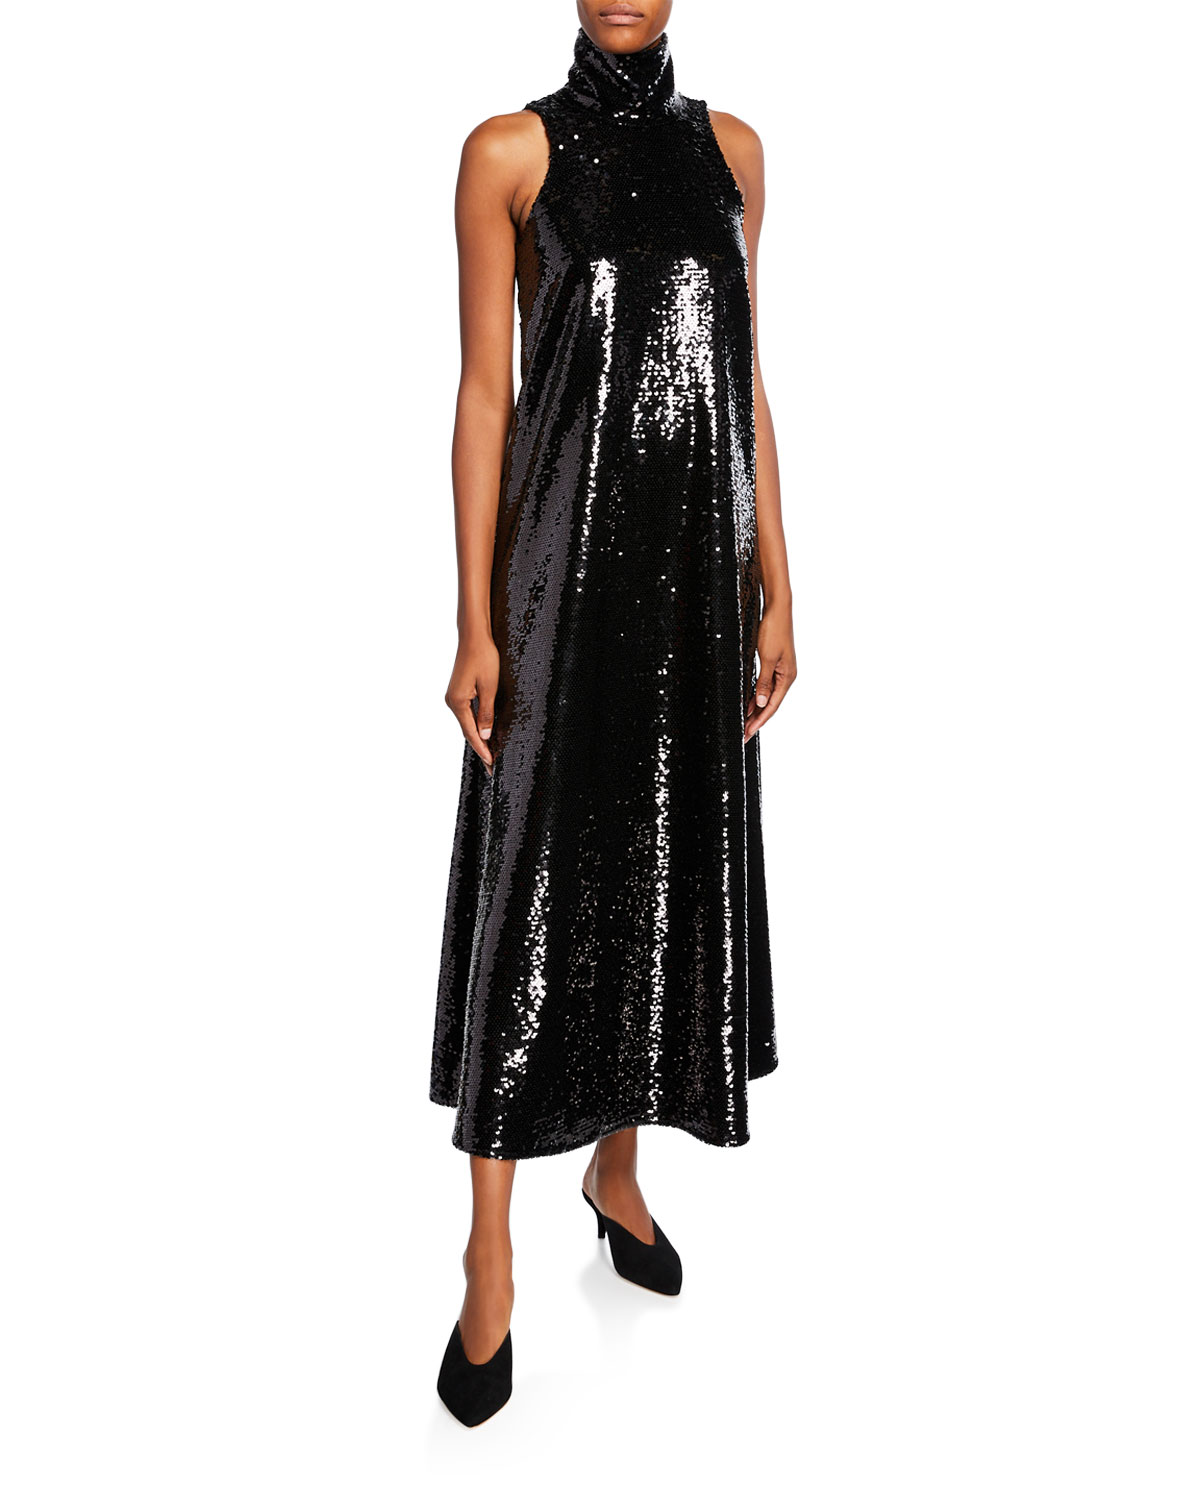 Co Dresses SEQUINED HALTER-NECK COCKTAIL DRESS